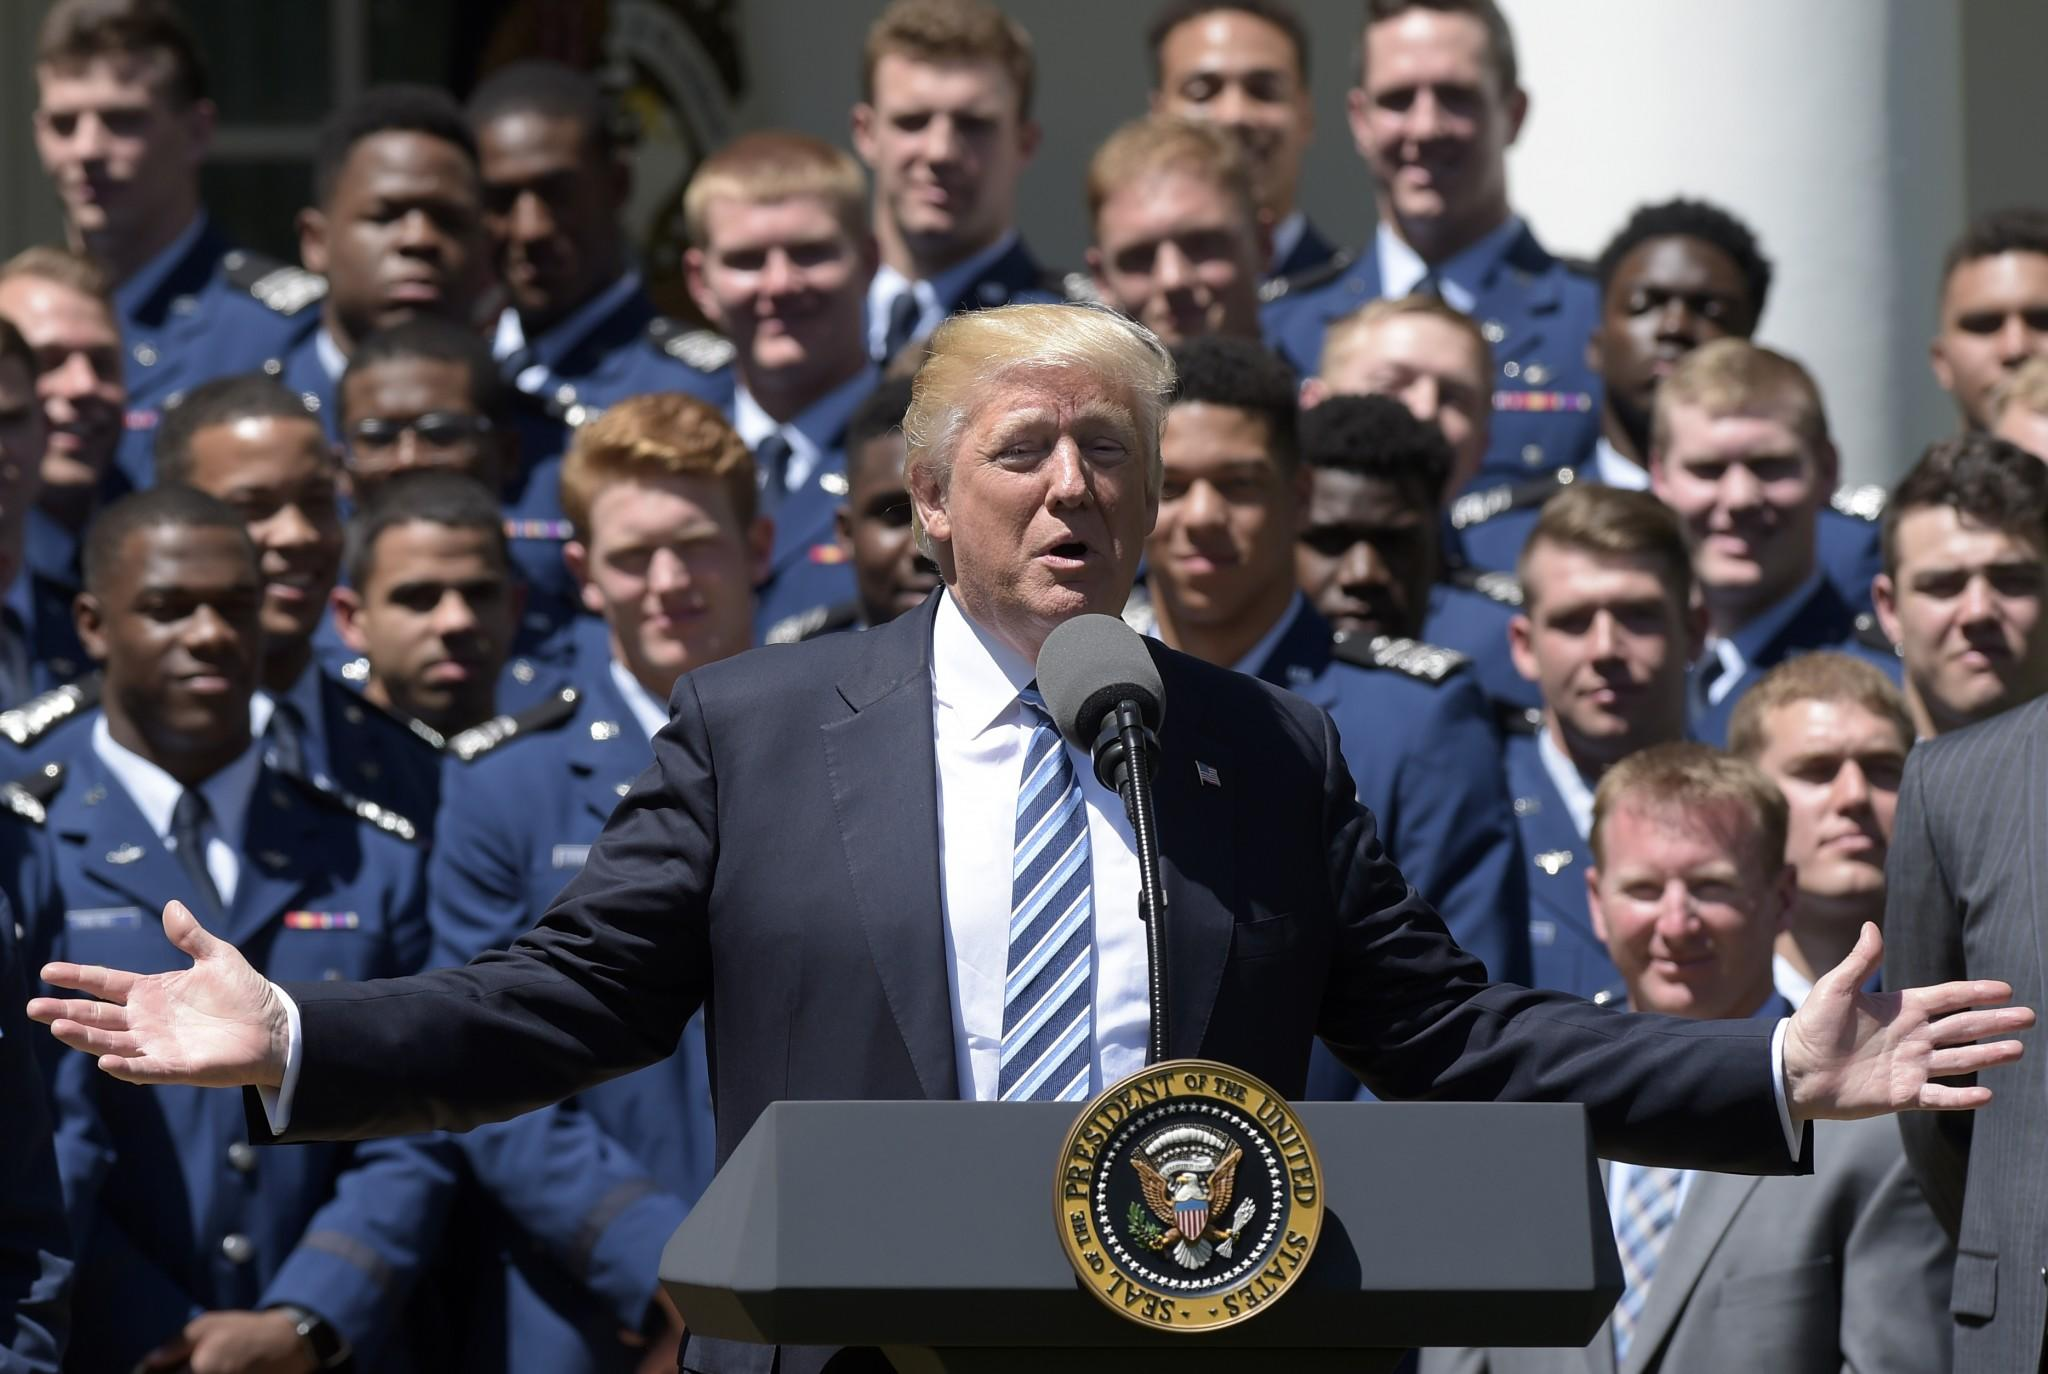 President Donald Trump speaks in the Rose Garden of the White House in Washington, Tuesday, May 2, 2017, during presentation ceremony of the Commander-in-Chief trophy to Air Force Academy football team. (Photo: Susan Walsh/AP)